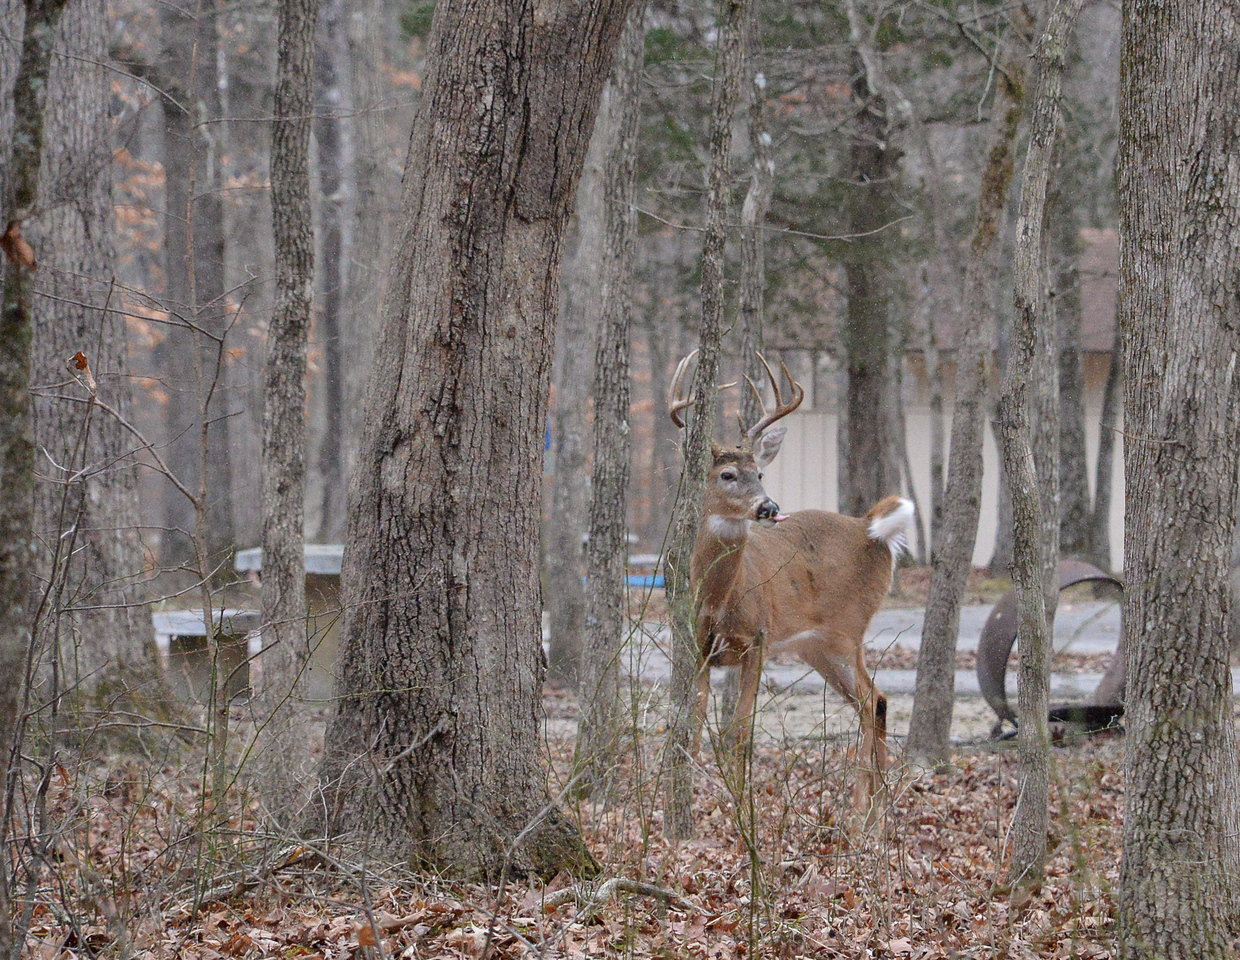 10 point buck sticking his tongue out - Mammoth Cave National Park